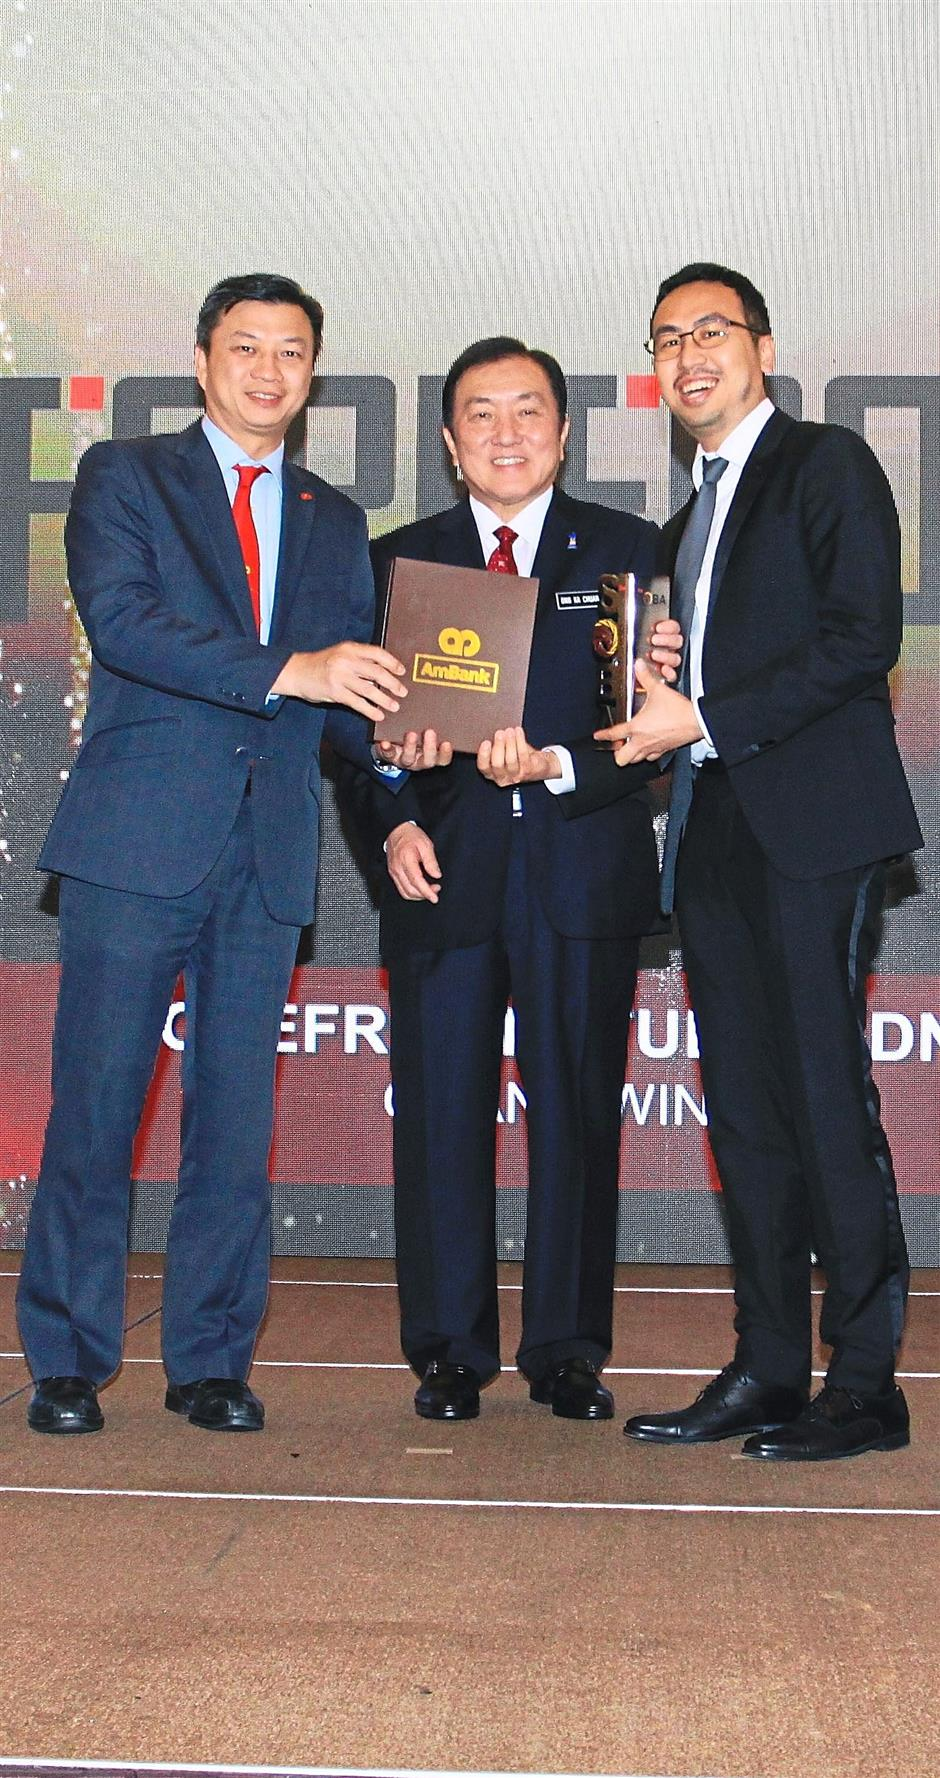 Yap presenting the Platinum award for Malaysian Business of the Year to Forefront Studio Sdn Bhd chief executive officer, Darien Mah while International Trade and Industry Minister II, Datuk Seri Ong Ka Chuan looks on.